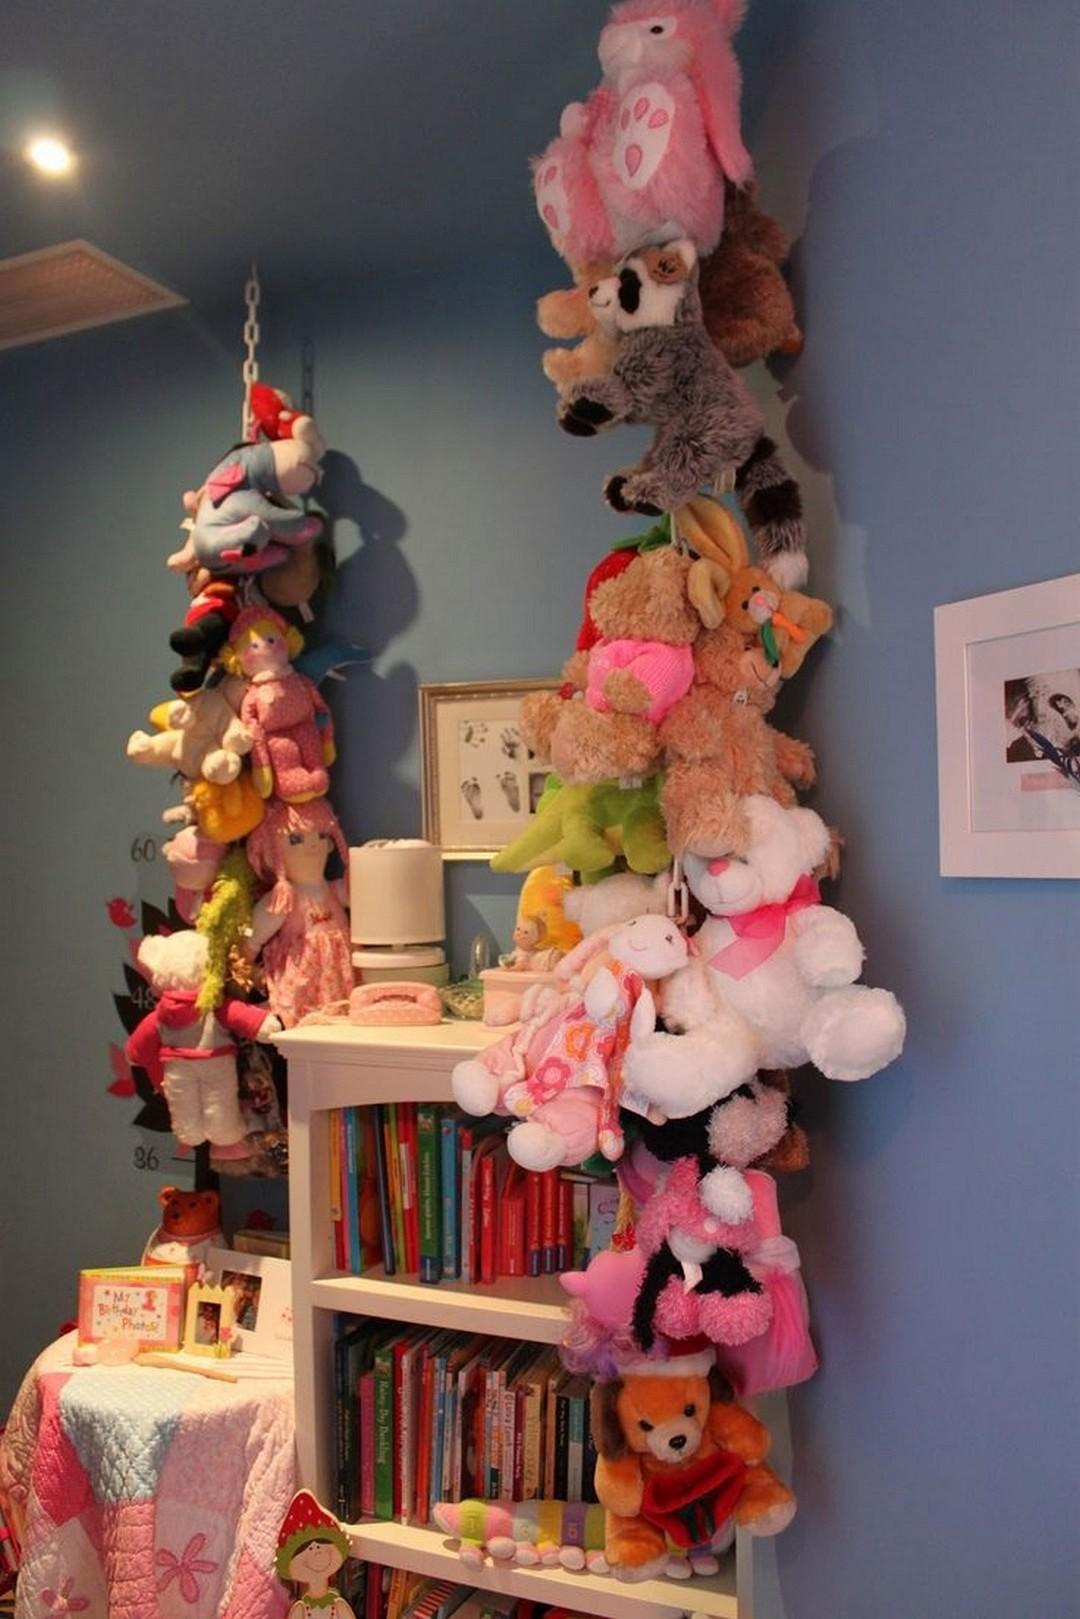 Creative Stuffed Animals Storage Idea Futurist